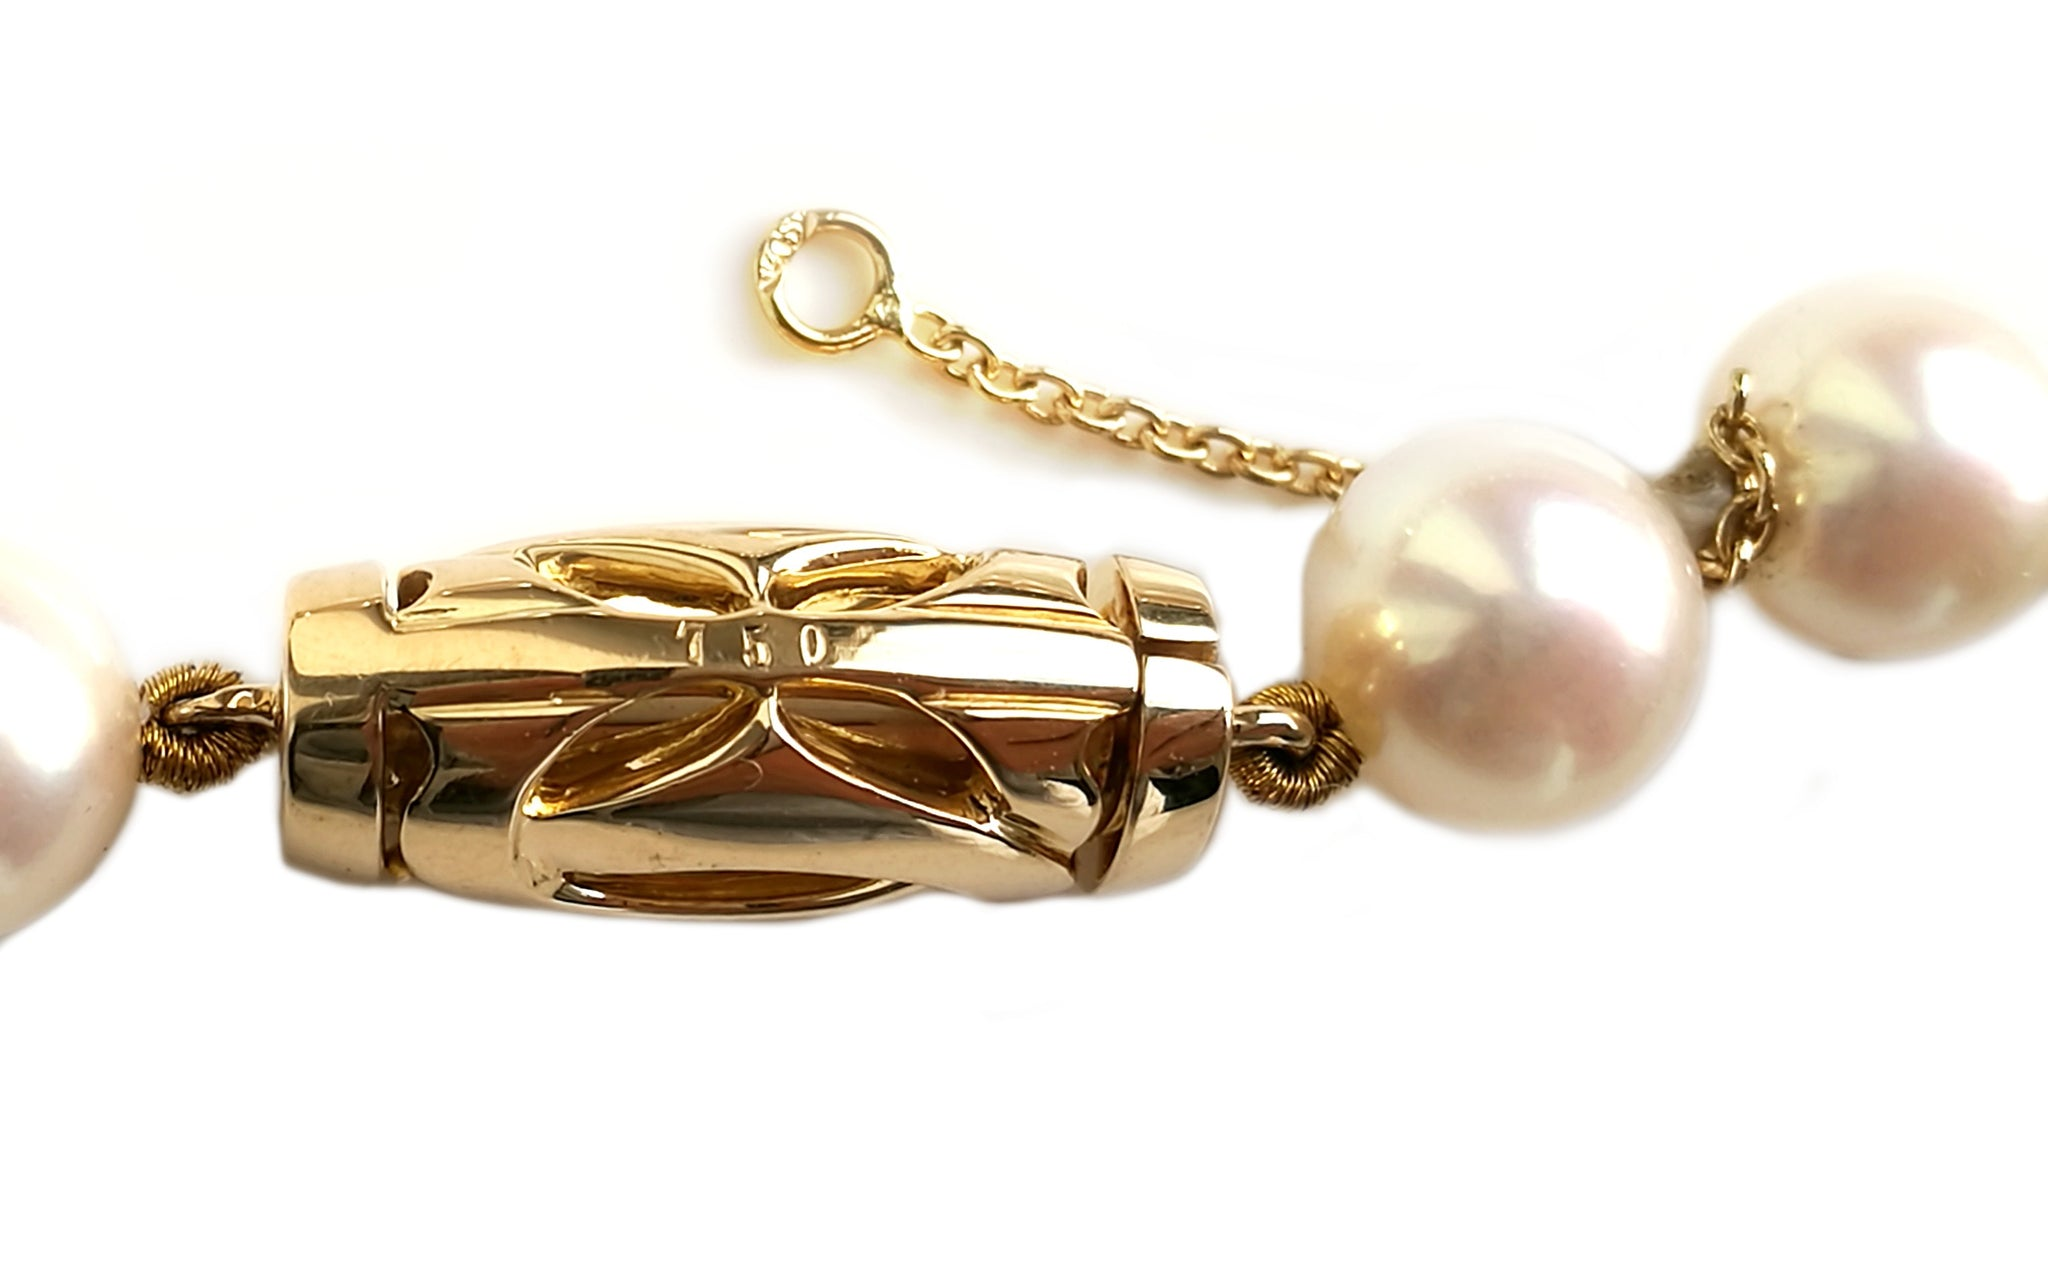 Cartier Akoya Pearl Dolphin Necklace in Tsavorite & 18k Yellow Gold